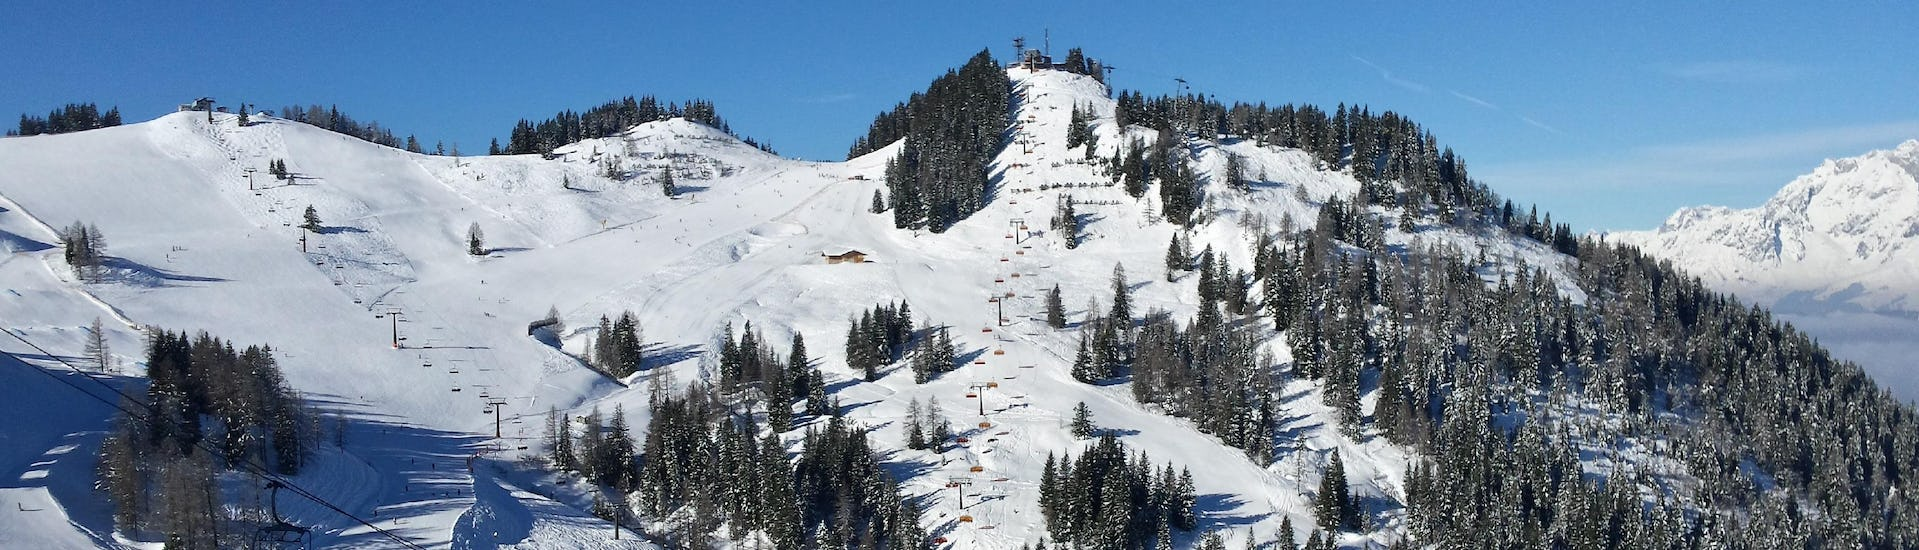 A view of the perfectly groomed ski slopes in the Austrian ski resort of Flachau, where local ski schools offer all types of ski lessons for people who wish to learn to ski.